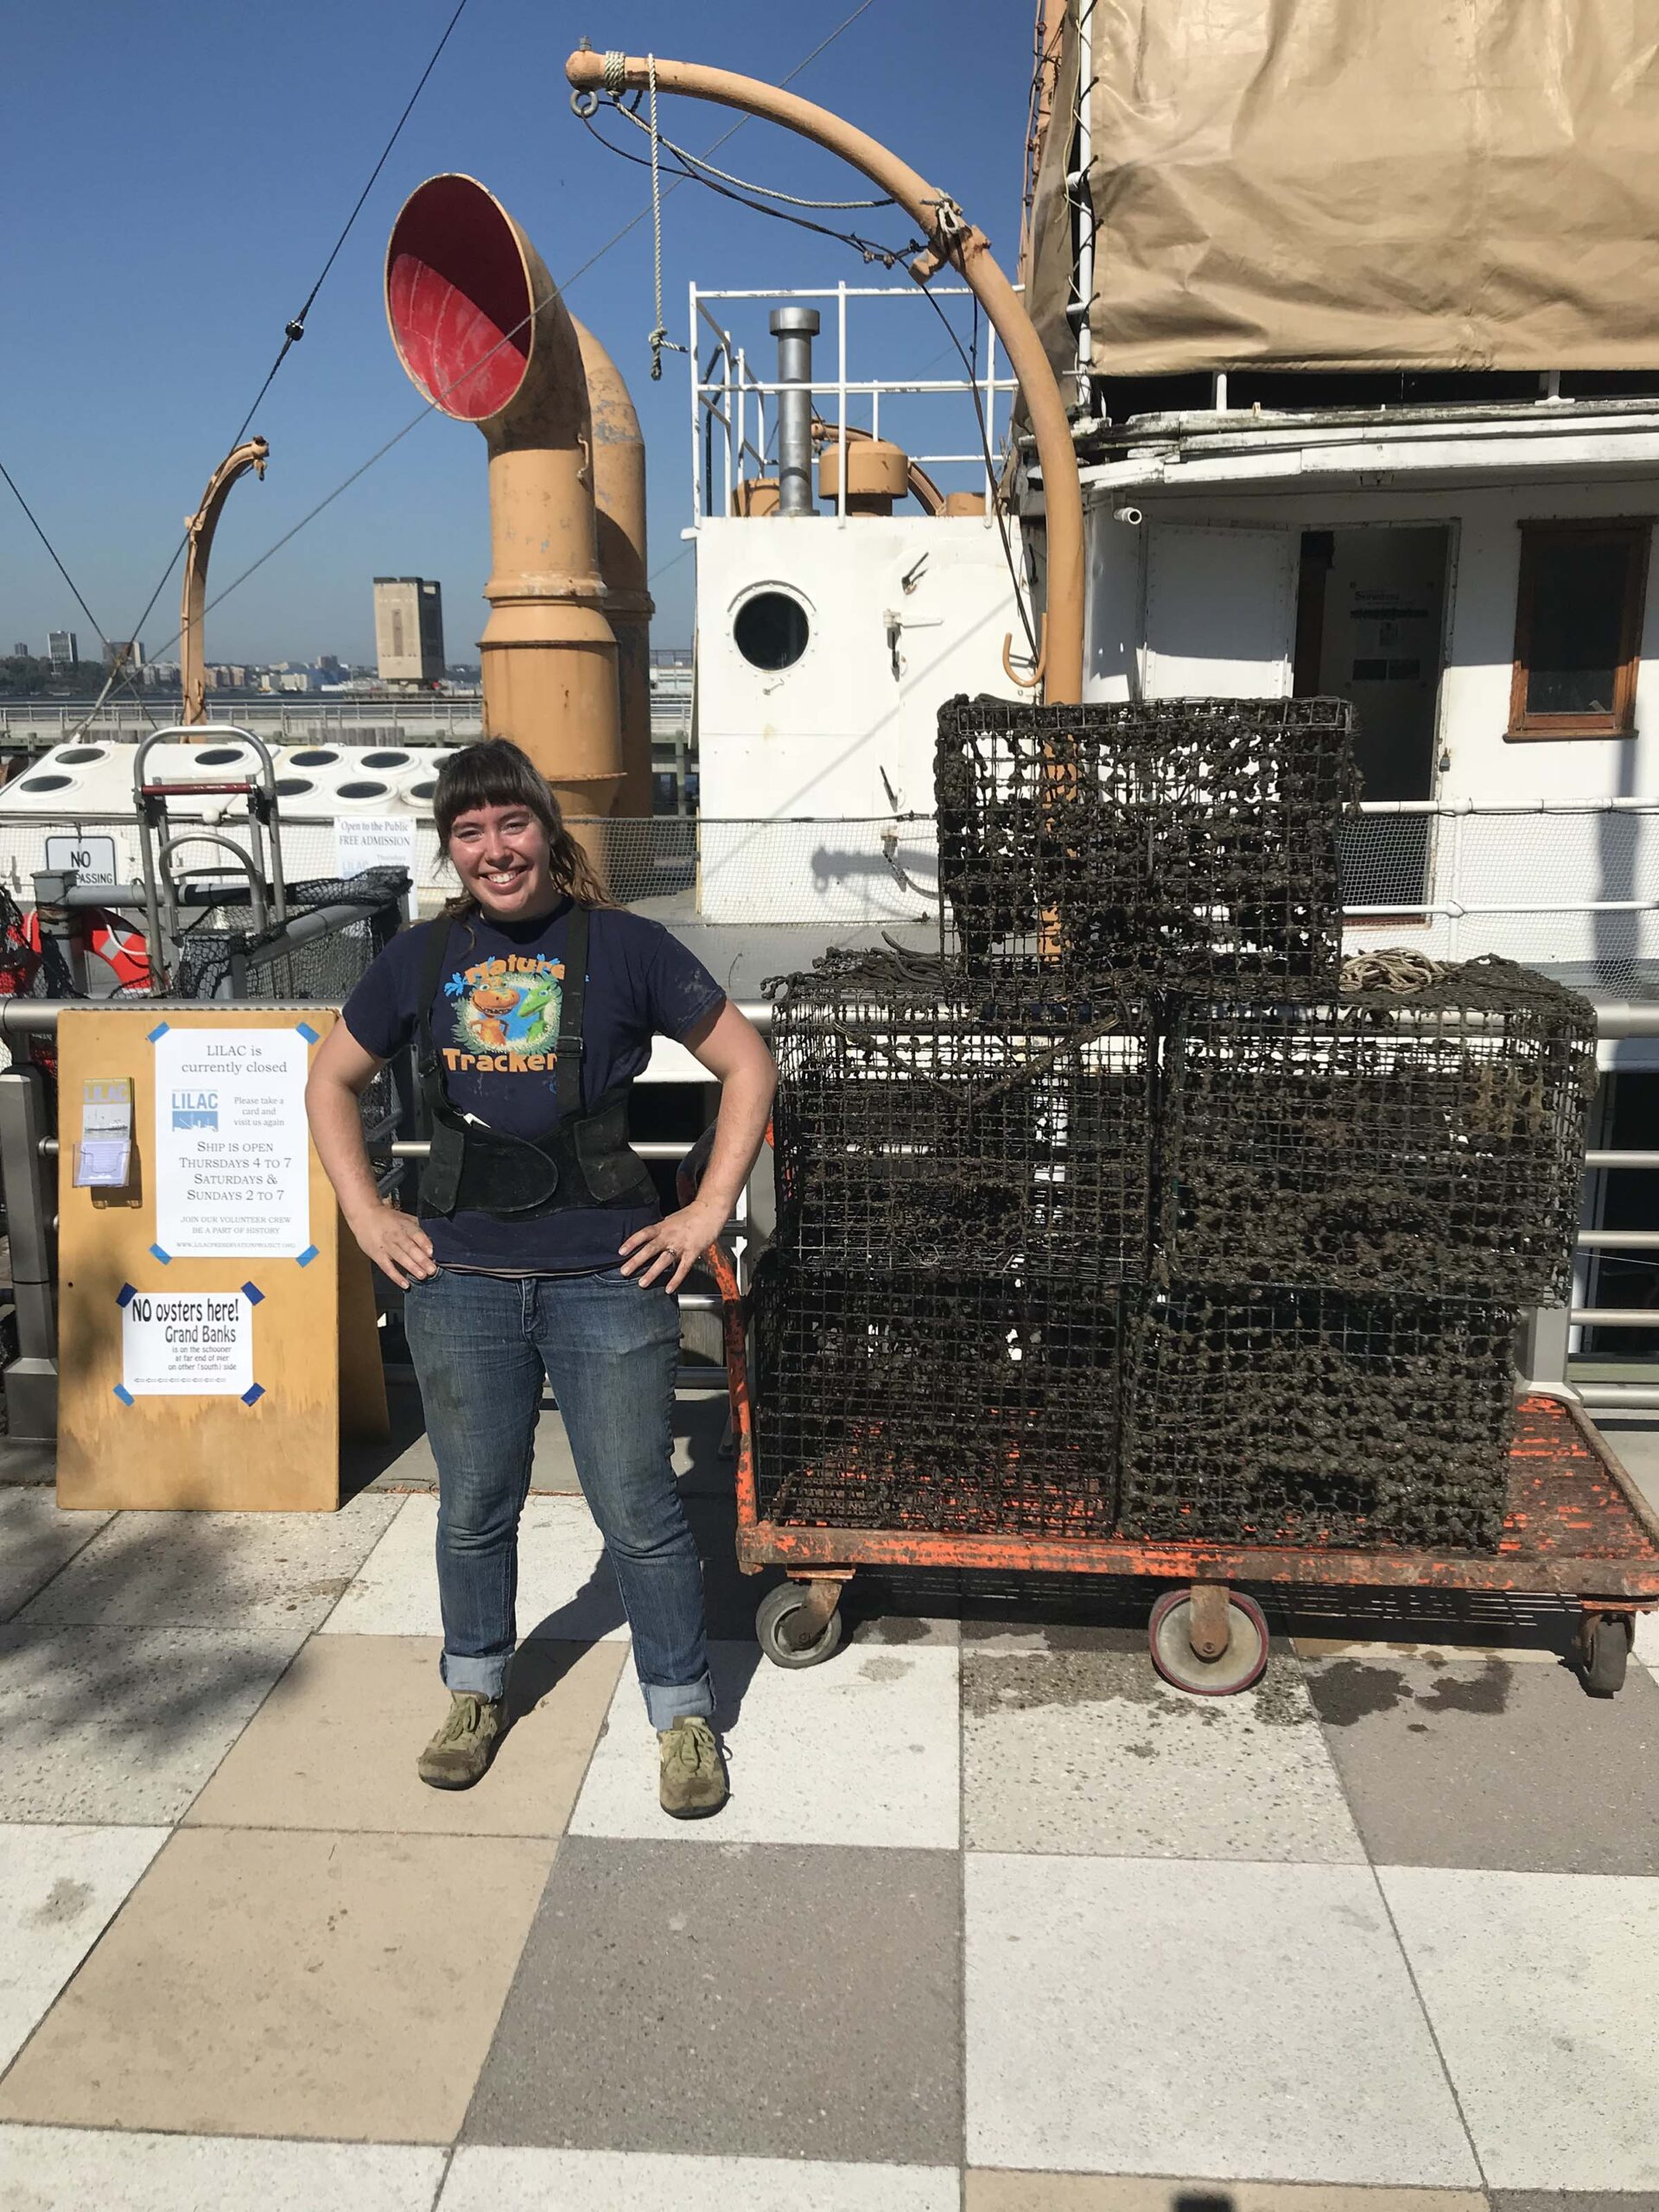 The oyster crates getting ready to be placed in the water